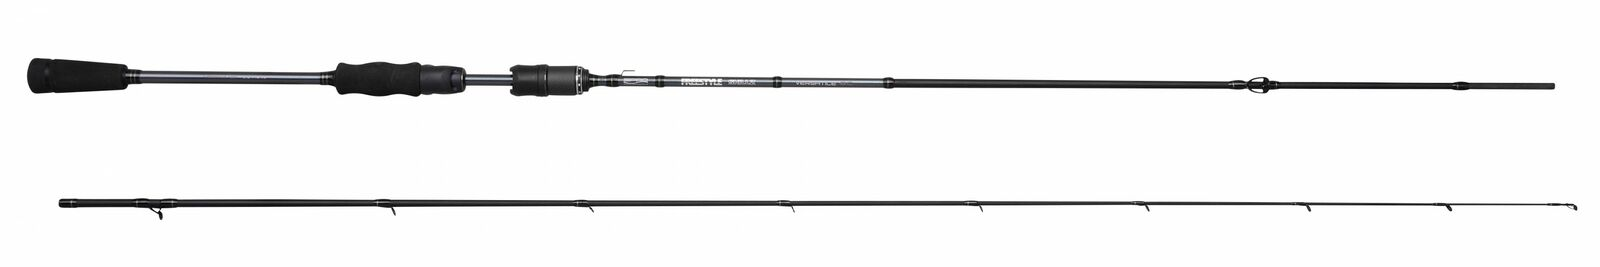 Spro Freestyle Skillz Versatile BC 2.15m 7-24g    Outlet Store Online